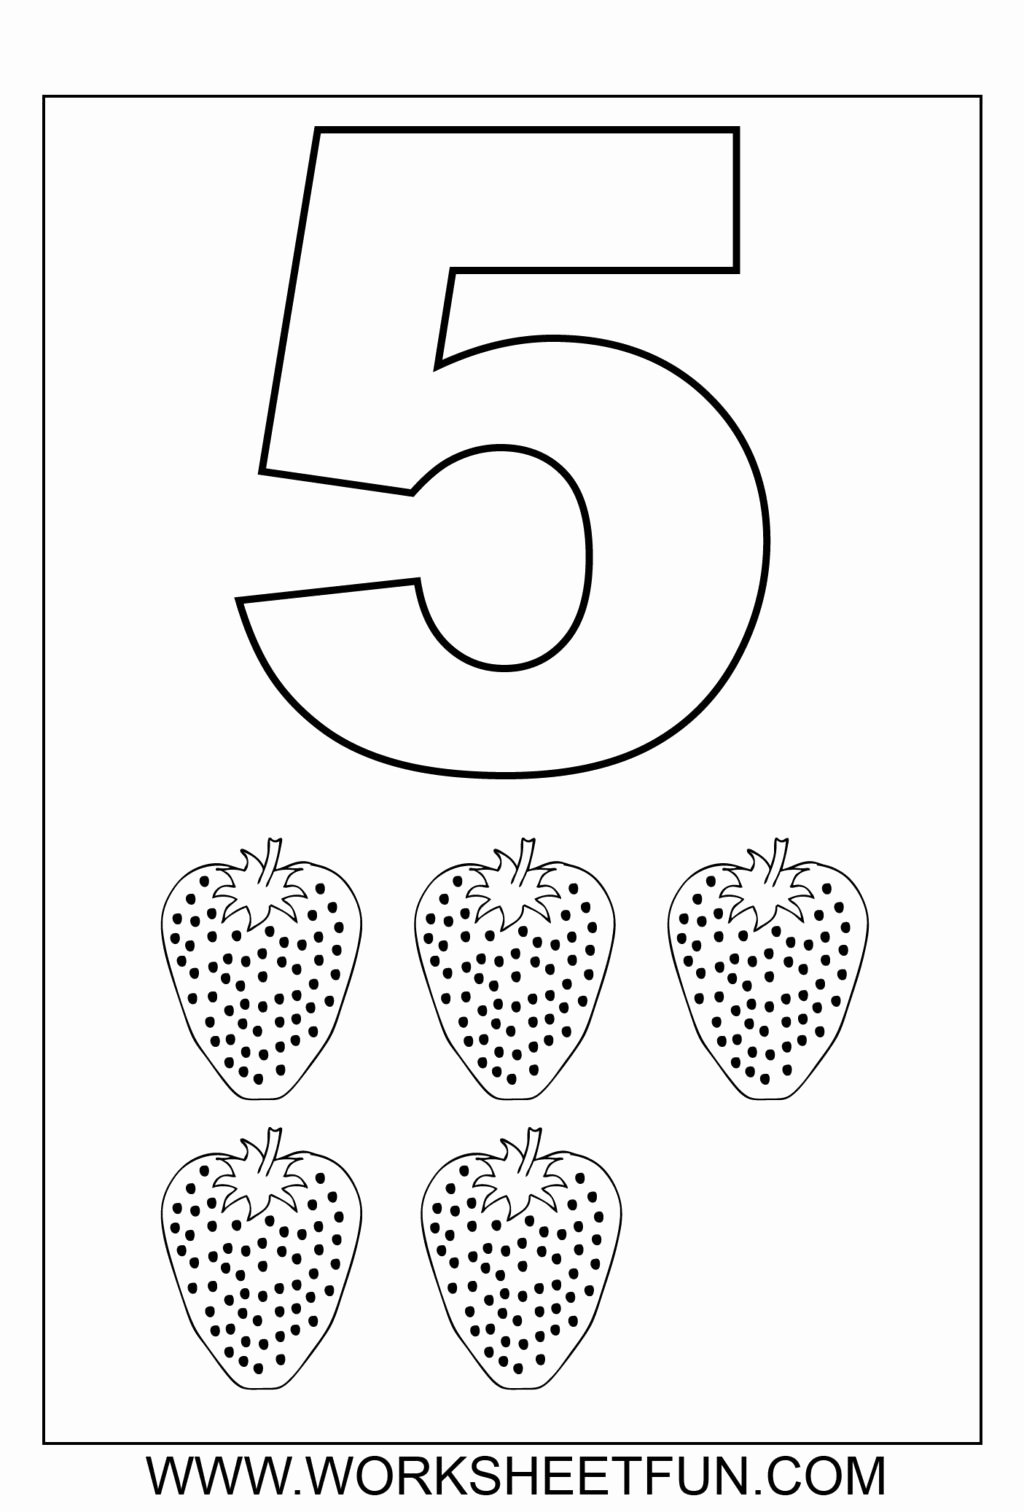 Number Worksheets for Preschoolers Inspirational Worksheet Worksheet Preschool Printable Worksheets and